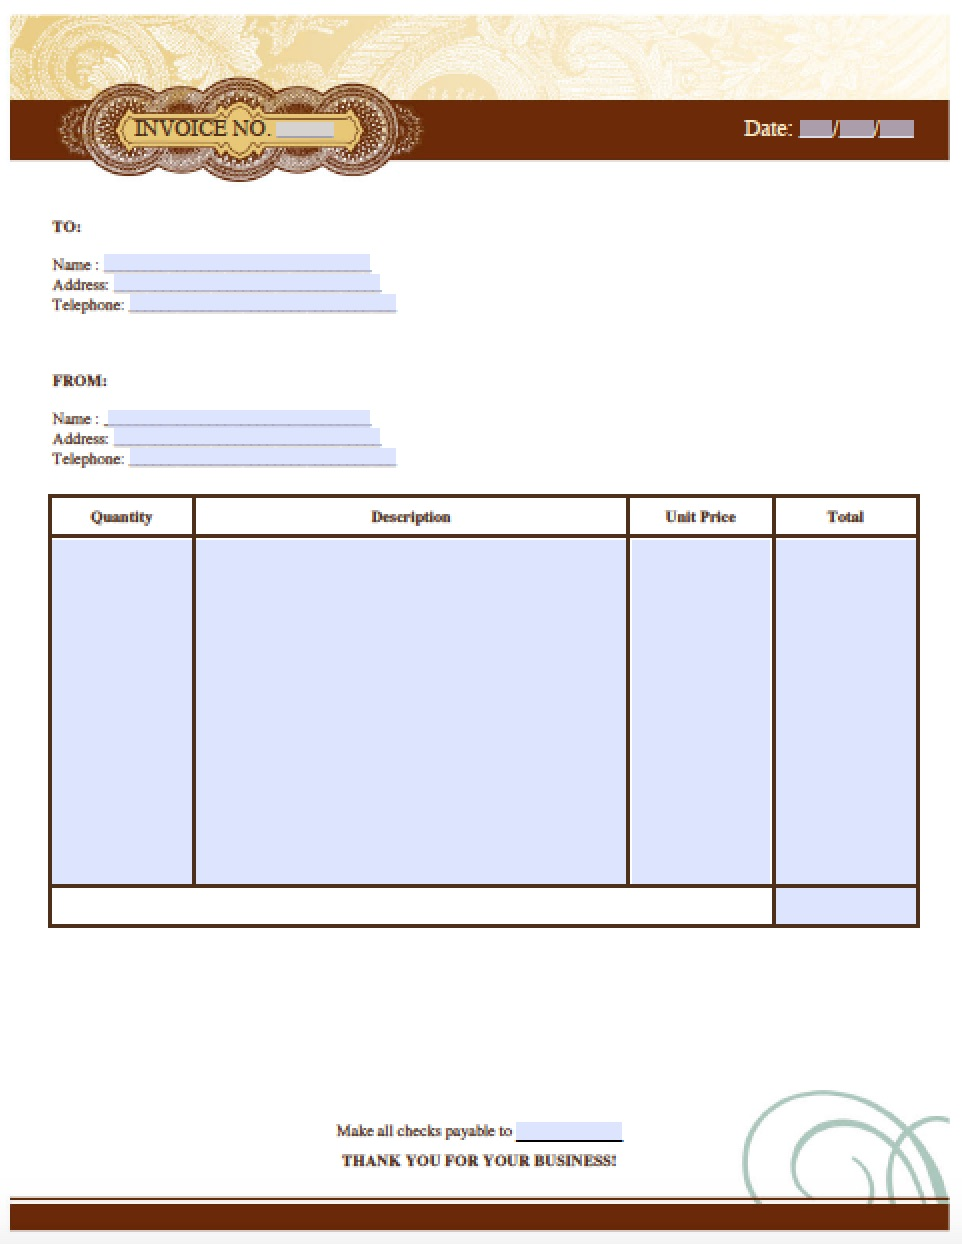 Free Artist Invoice Template Excel PDF Word Doc - Format for invoice for services for service business